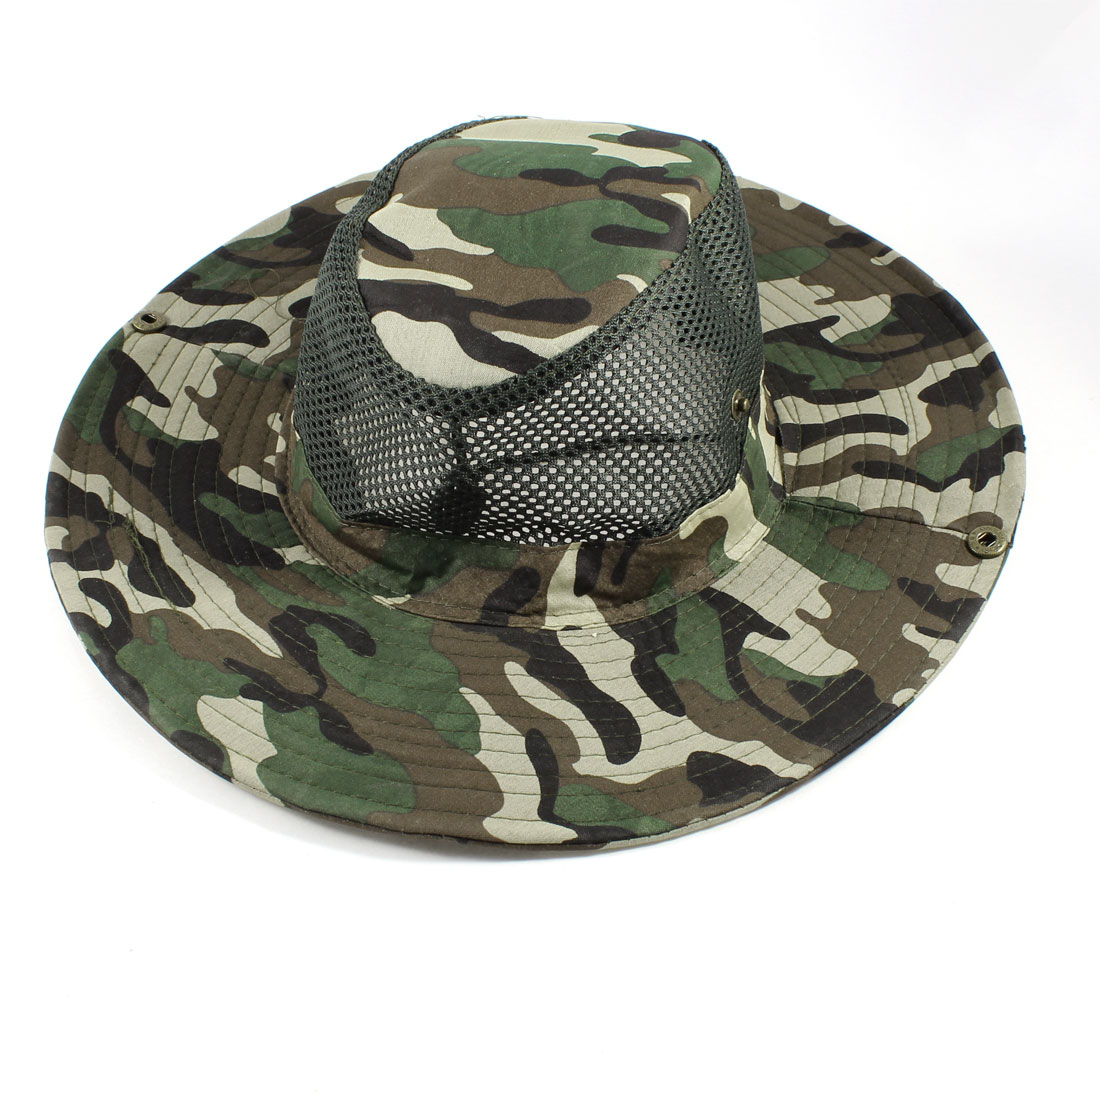 Neck Strap Dark Brown Green Beige Camouflage Pattern Wide Brim Fishing Hat Cap